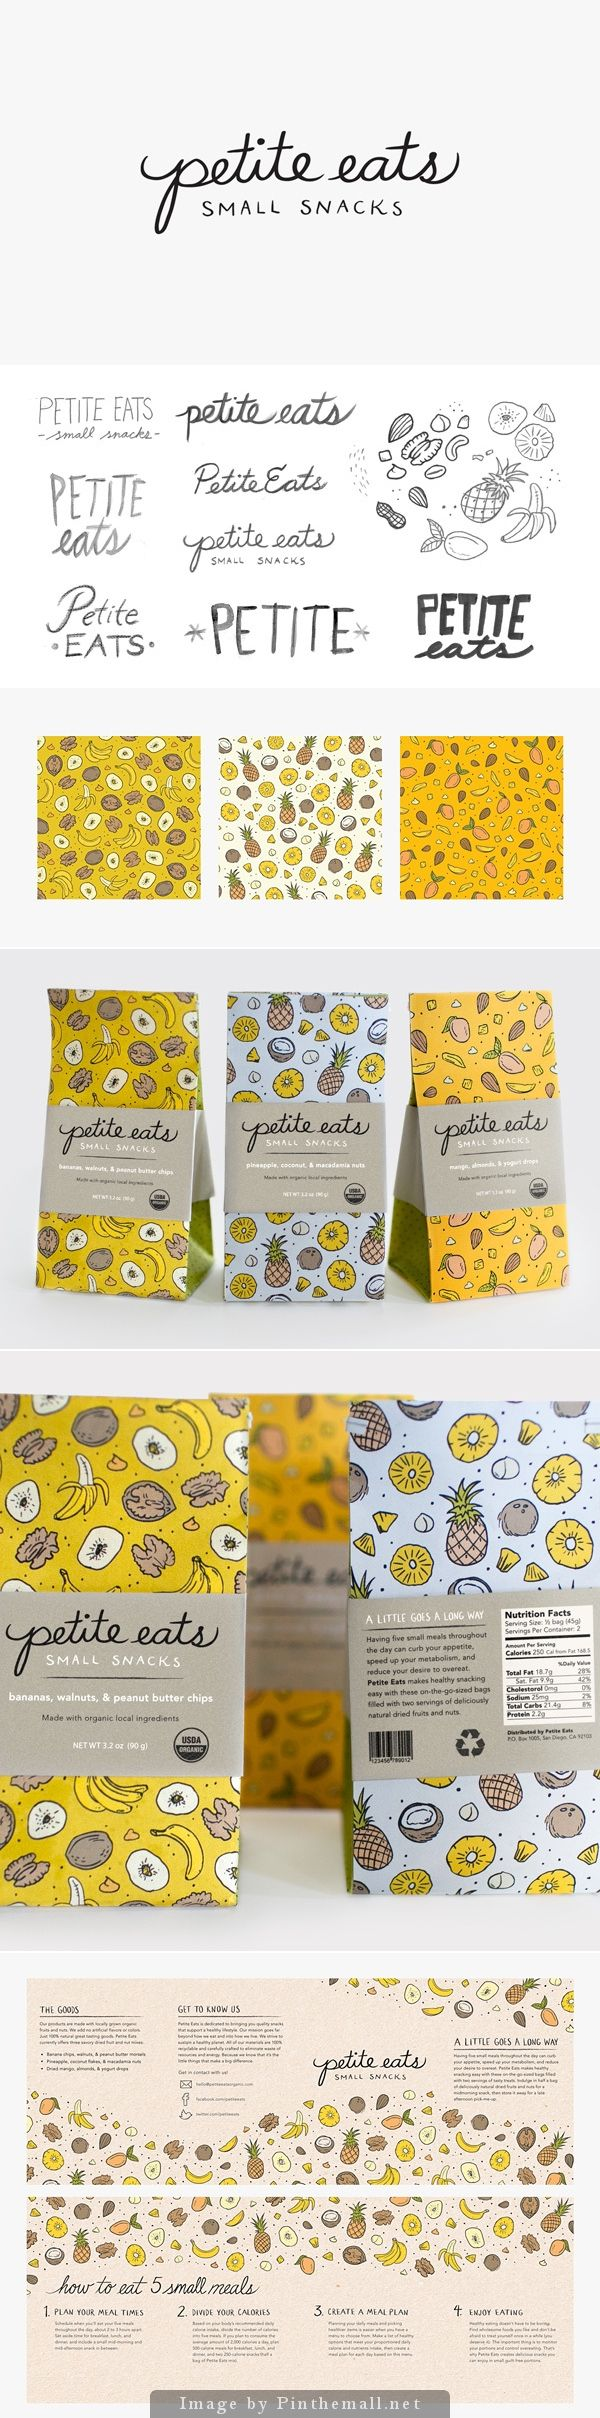 Petit Eats Healthy Snack Foods Packaging Design www.lab333.com https://www.facebook.com/pages/LAB-STYLE/585086788169863 http://www.labs333style.com www.lablikes.tumblr.com www.pinterest.com/labstyle